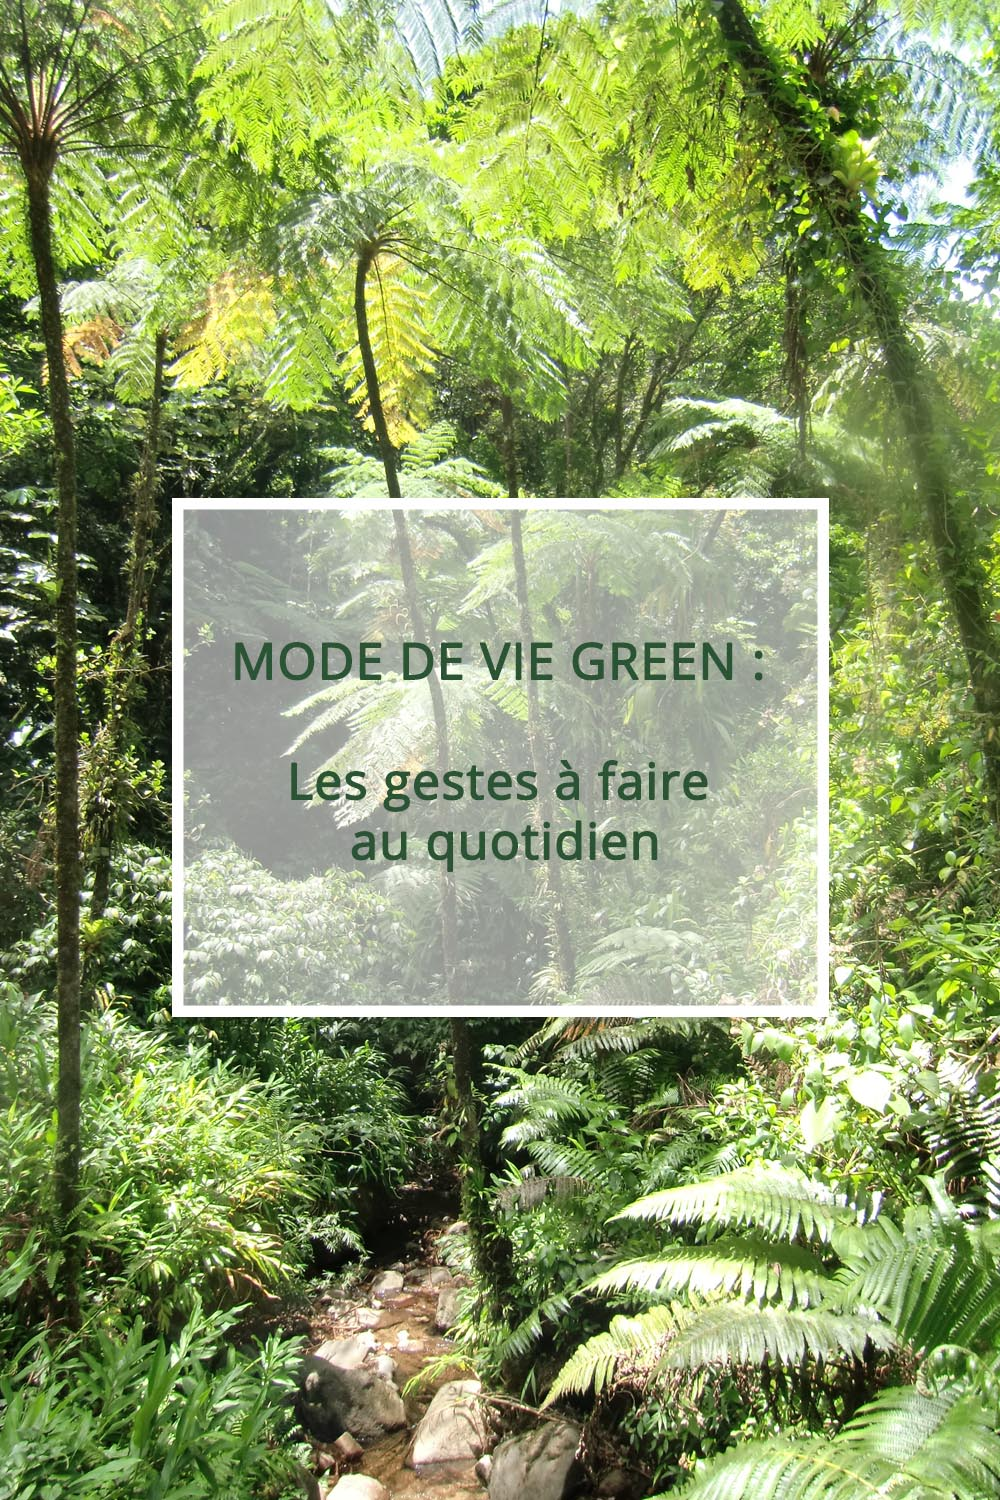 Mode de vie Green